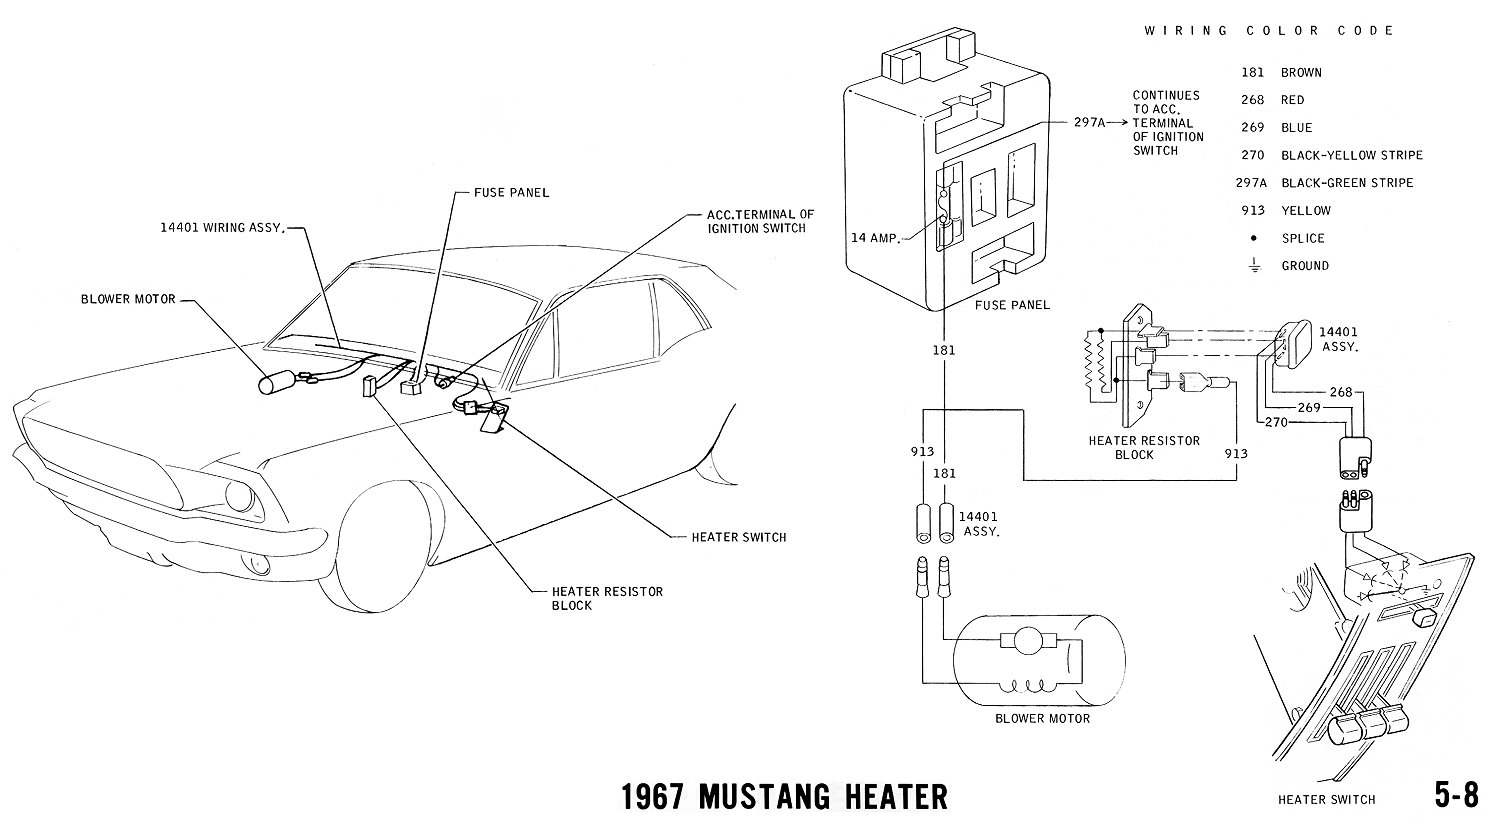 67heater 1967 mustang wiring and vacuum diagrams average joe restoration 1966 mustang headlight wiring diagram at n-0.co